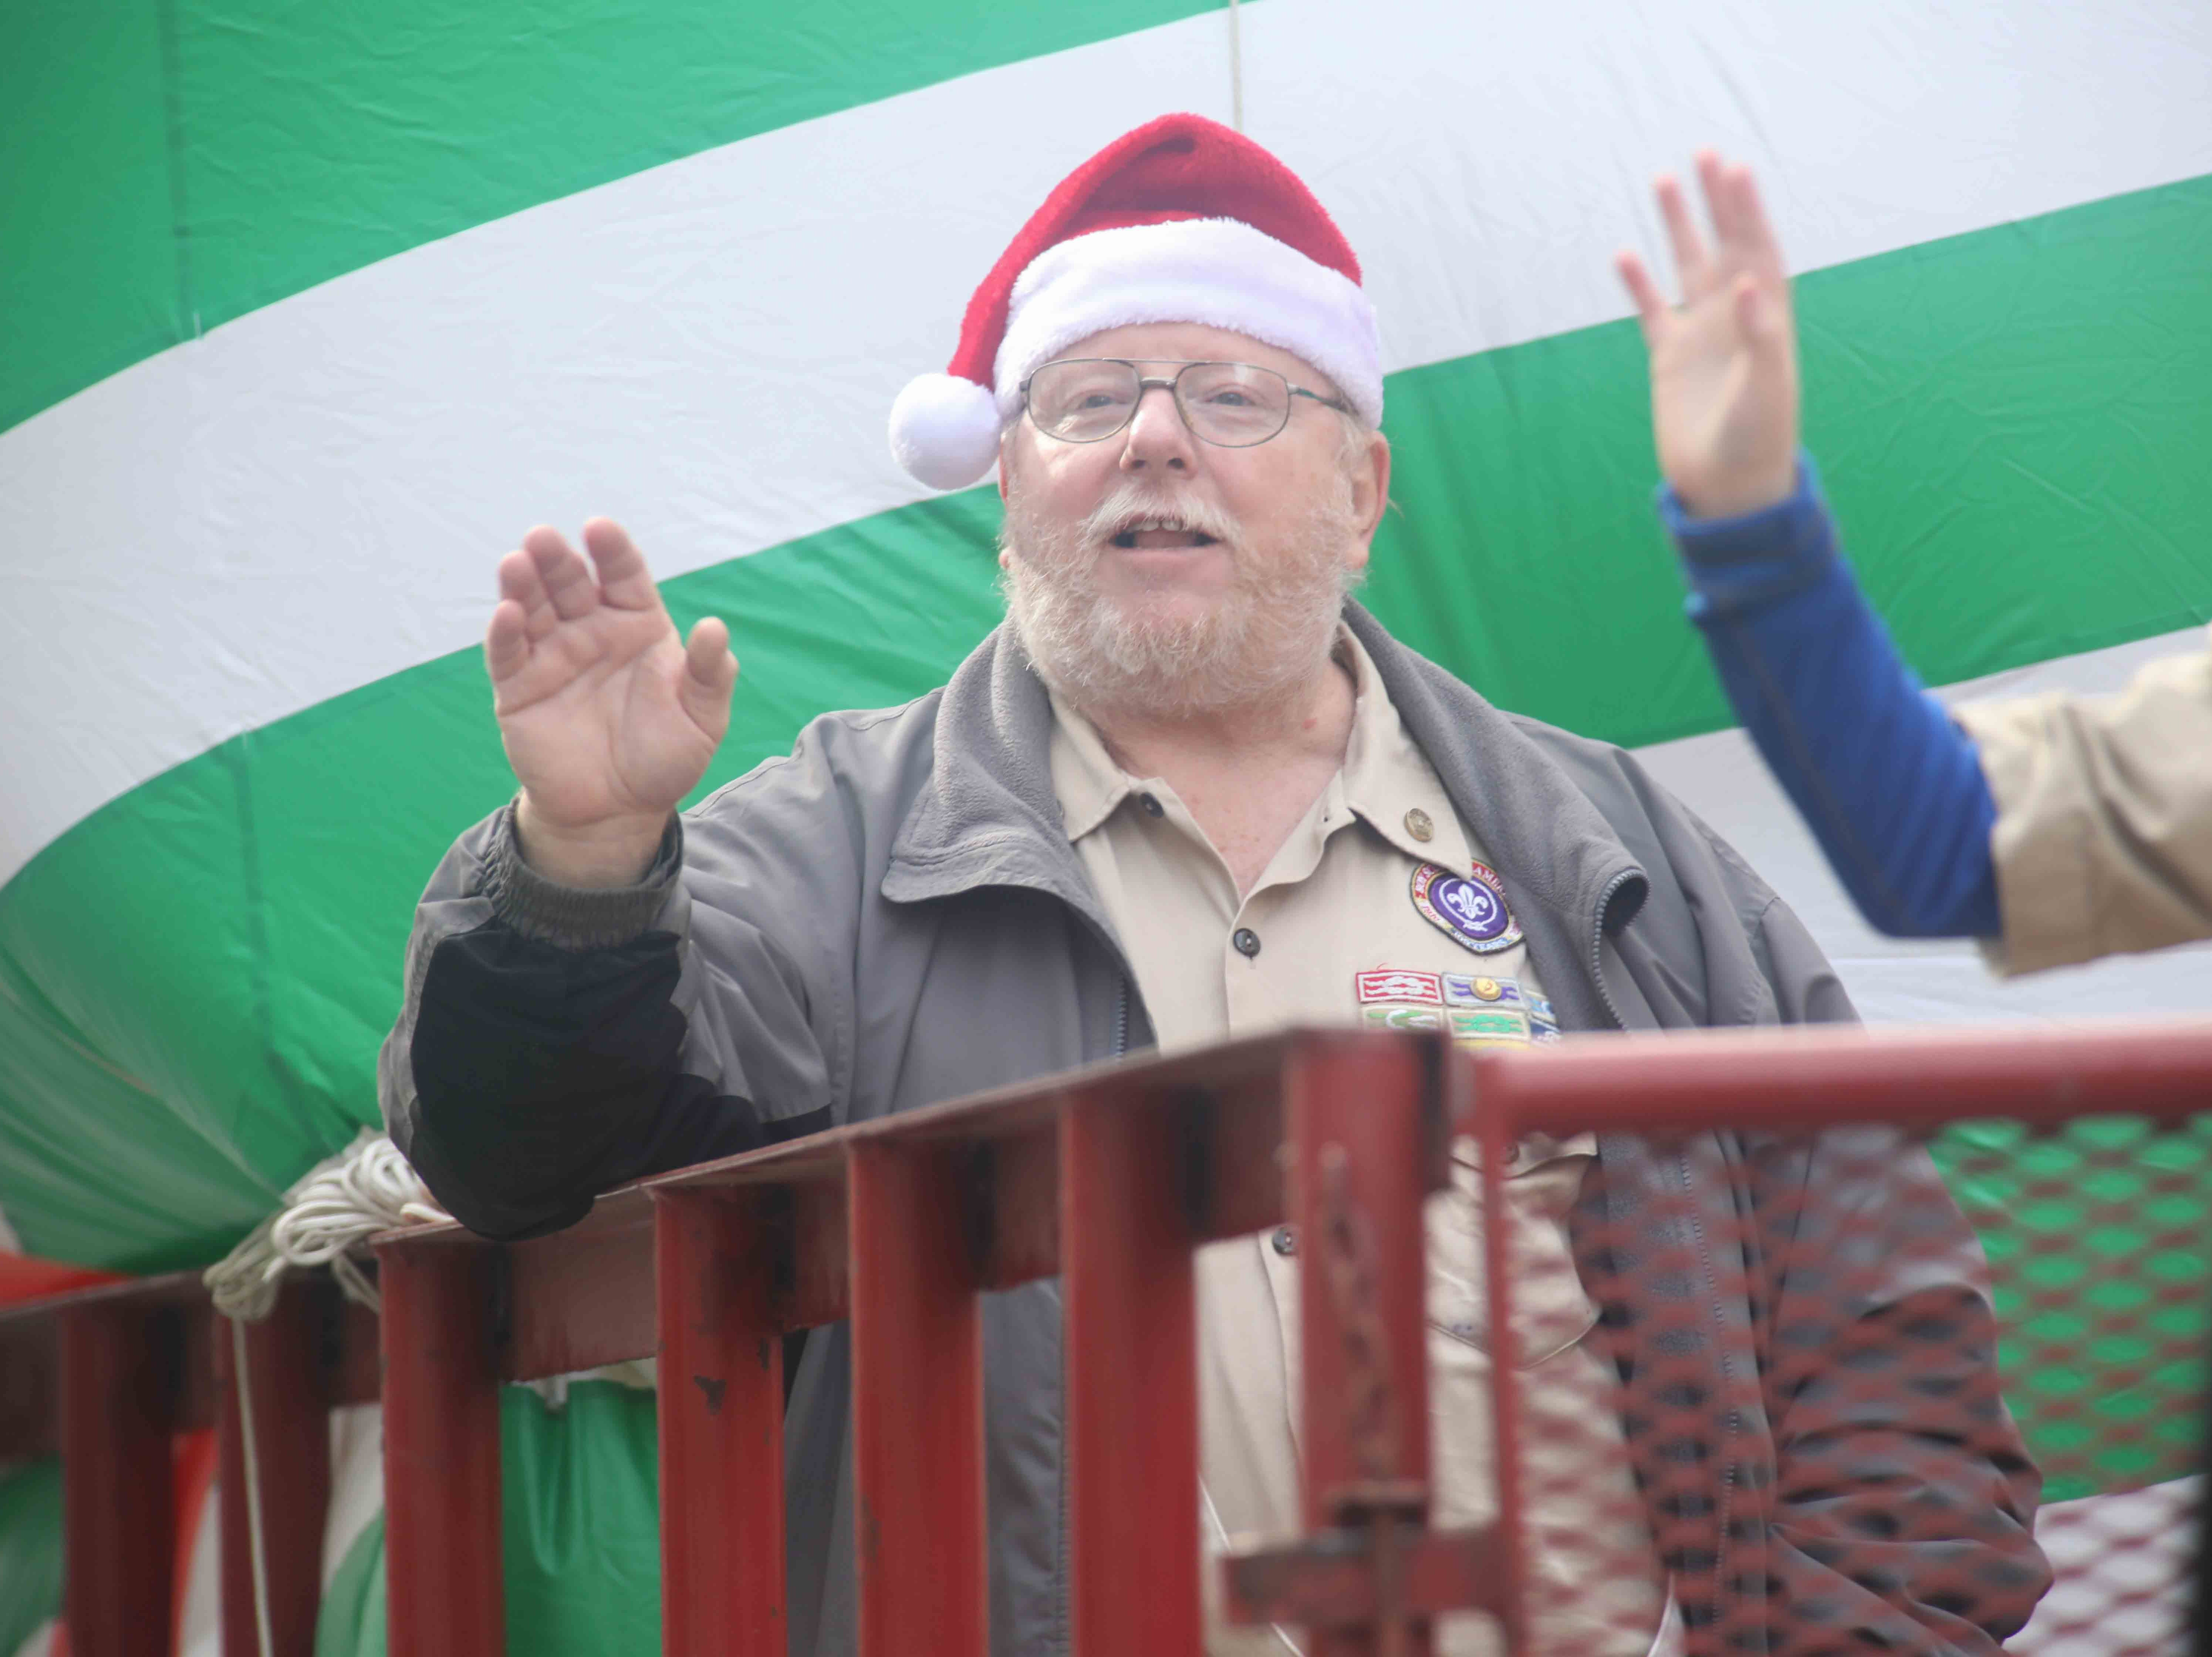 Spectators enjoy marching bands, floats, and of course, Santa during the Wilmington Jaycees 55th Annual Christmas Parade along Market Street Saturday, Nov. 24, 2018, in Wilmington, Delaware.